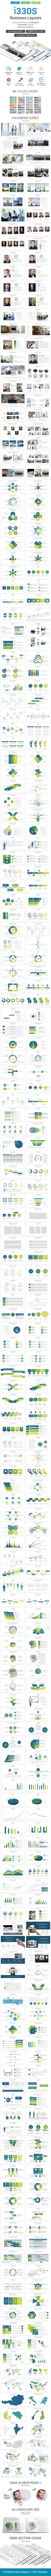 i330S Business Layouts PowerPoint Presentation Template